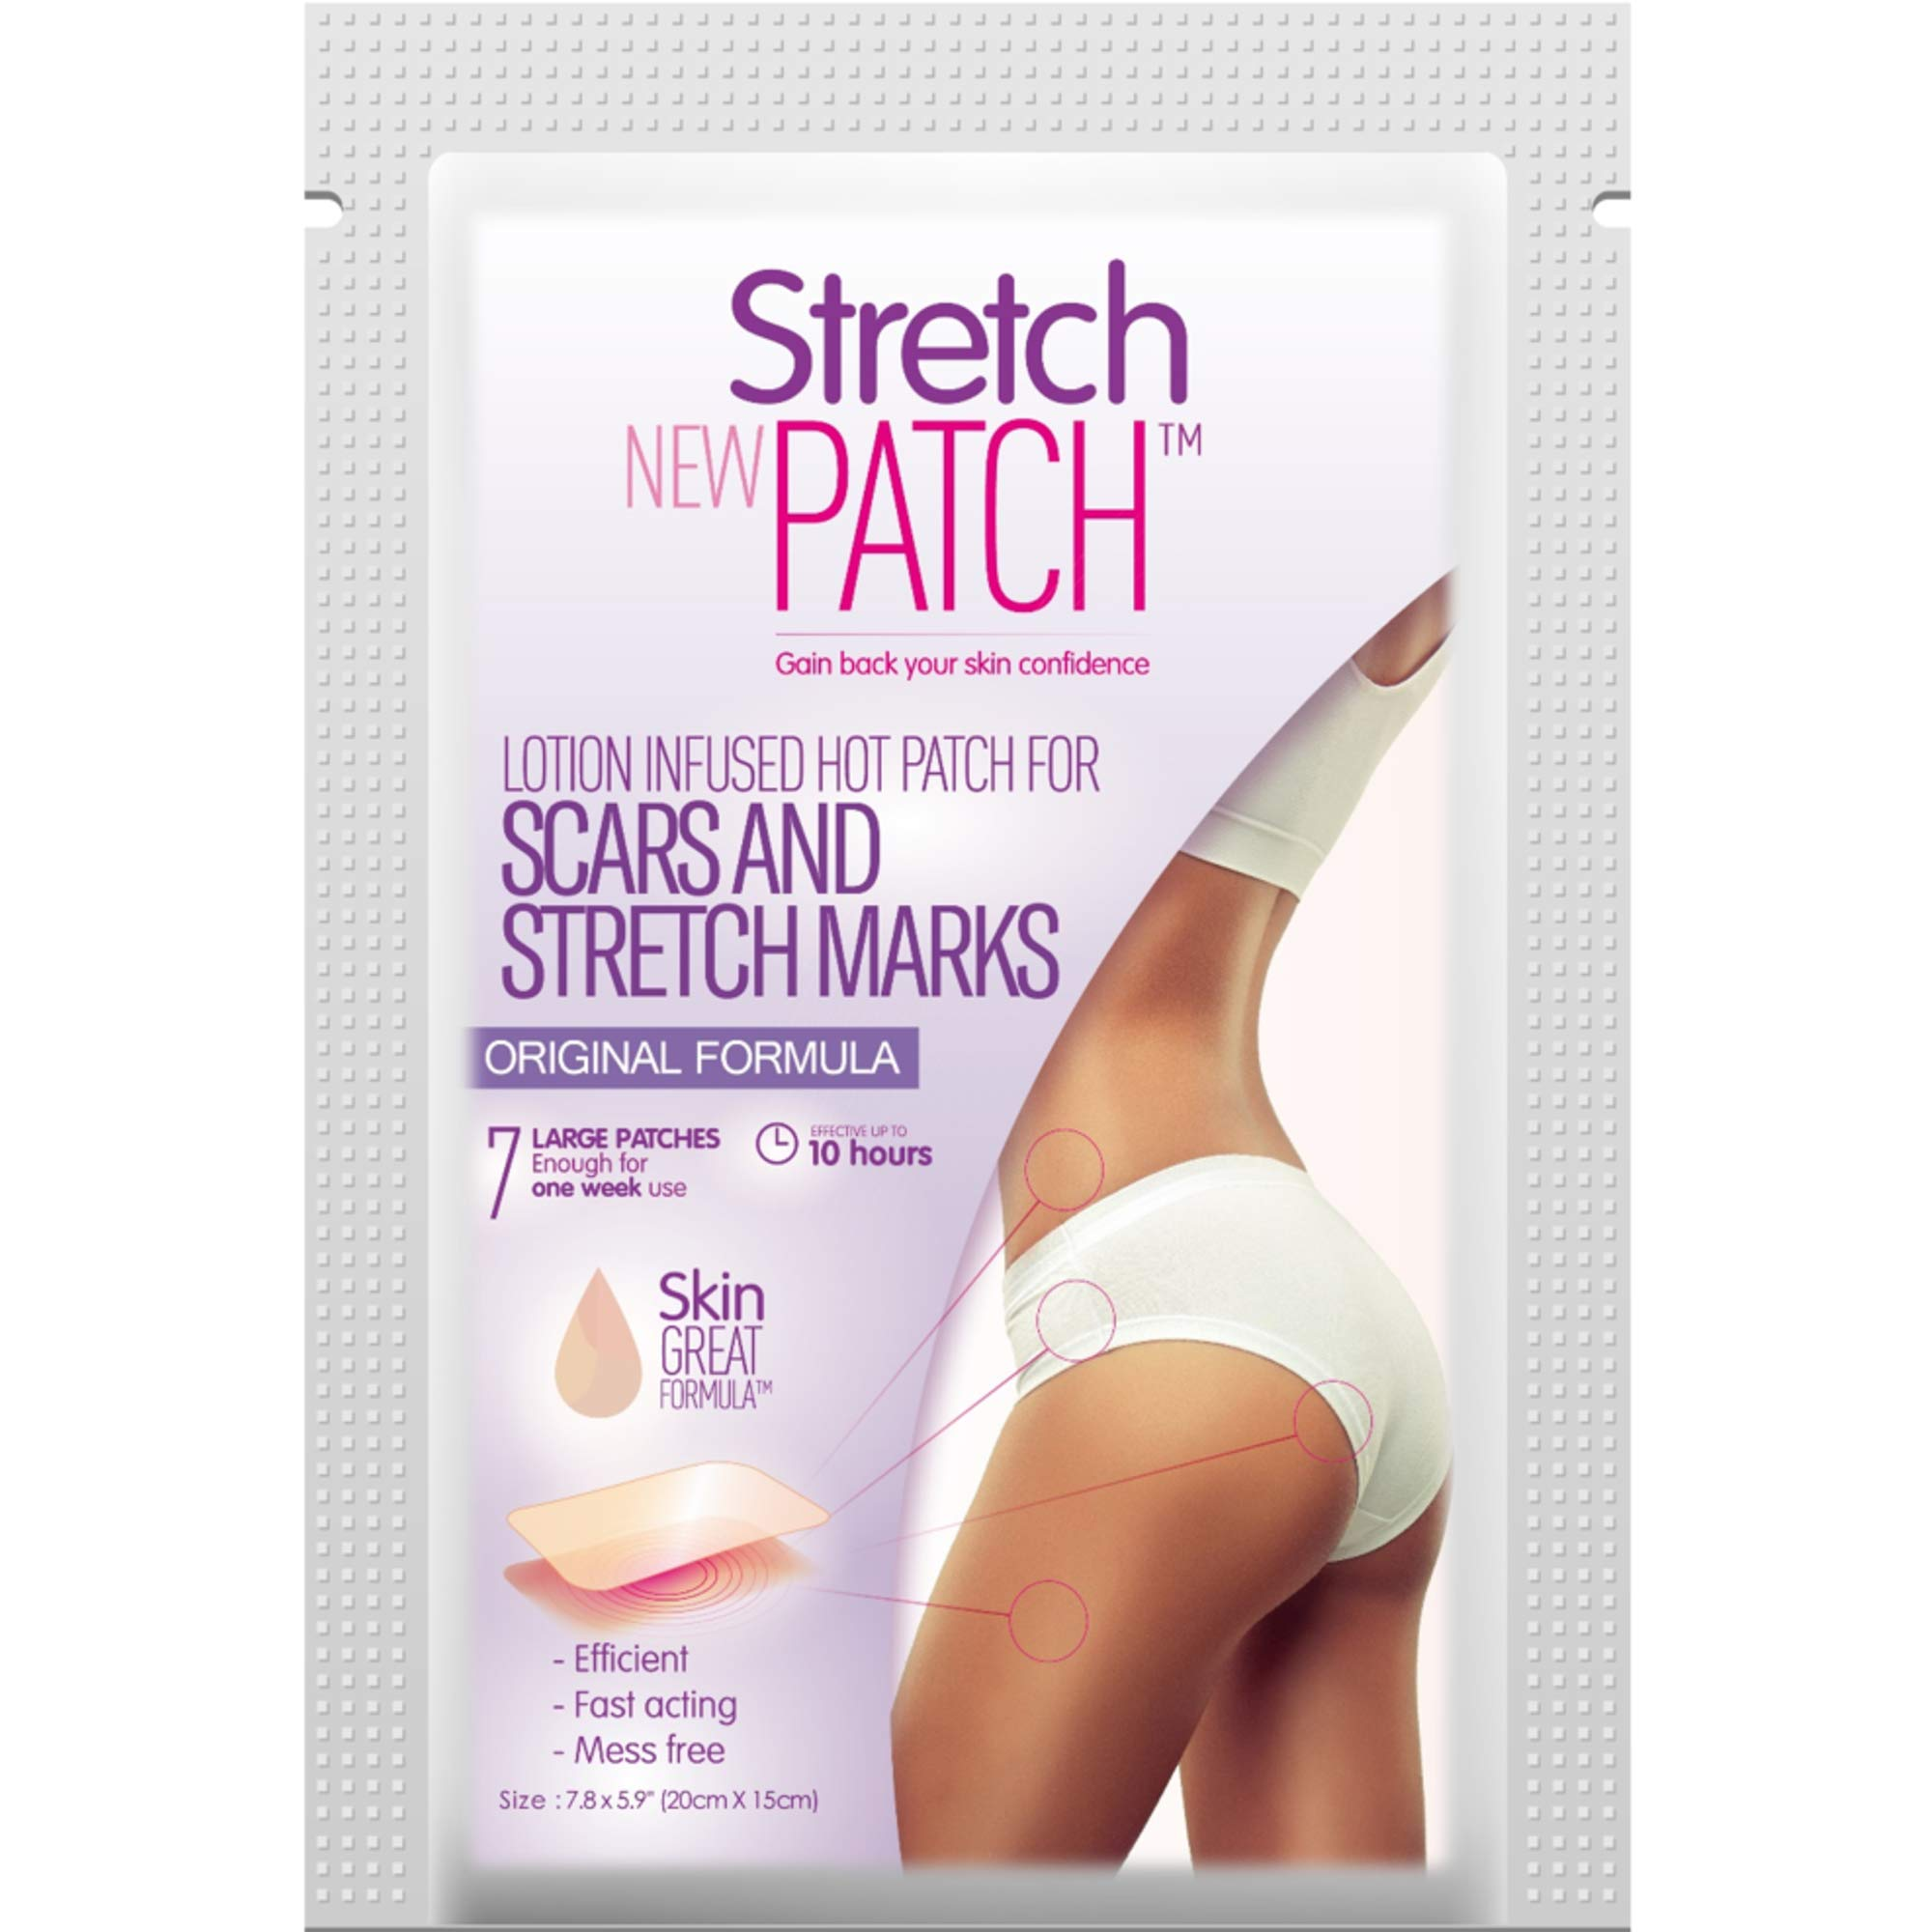 Stretch Patch ORIGINAL Formula, Lotion Infused Hot Patch for Scars and Stretch Marks, 7 ea (20 x 15cm) by Stretch Patch